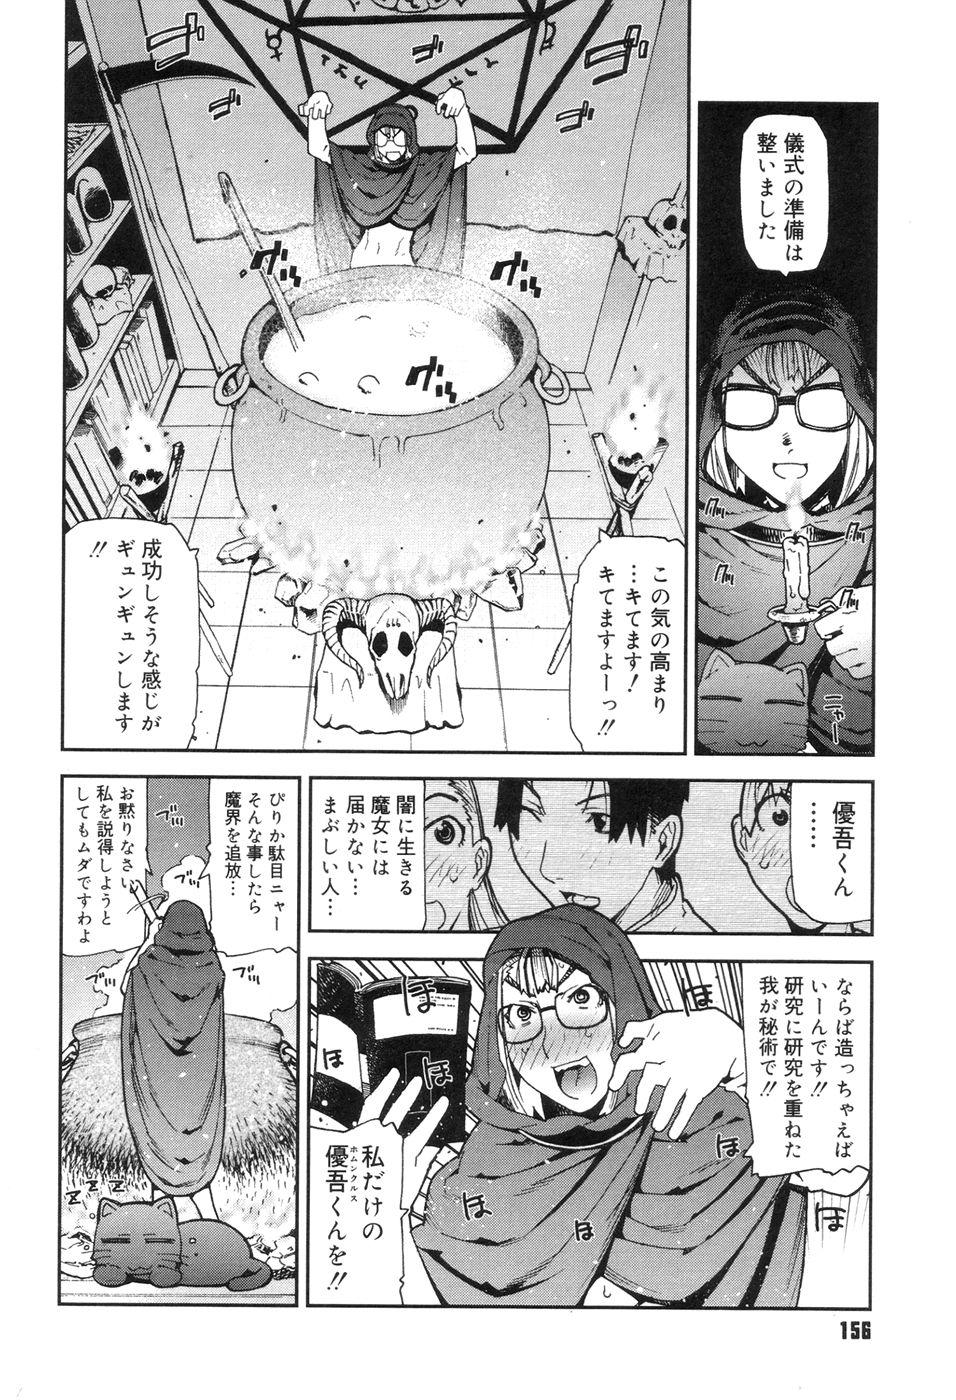 Onee-chan to issho 157